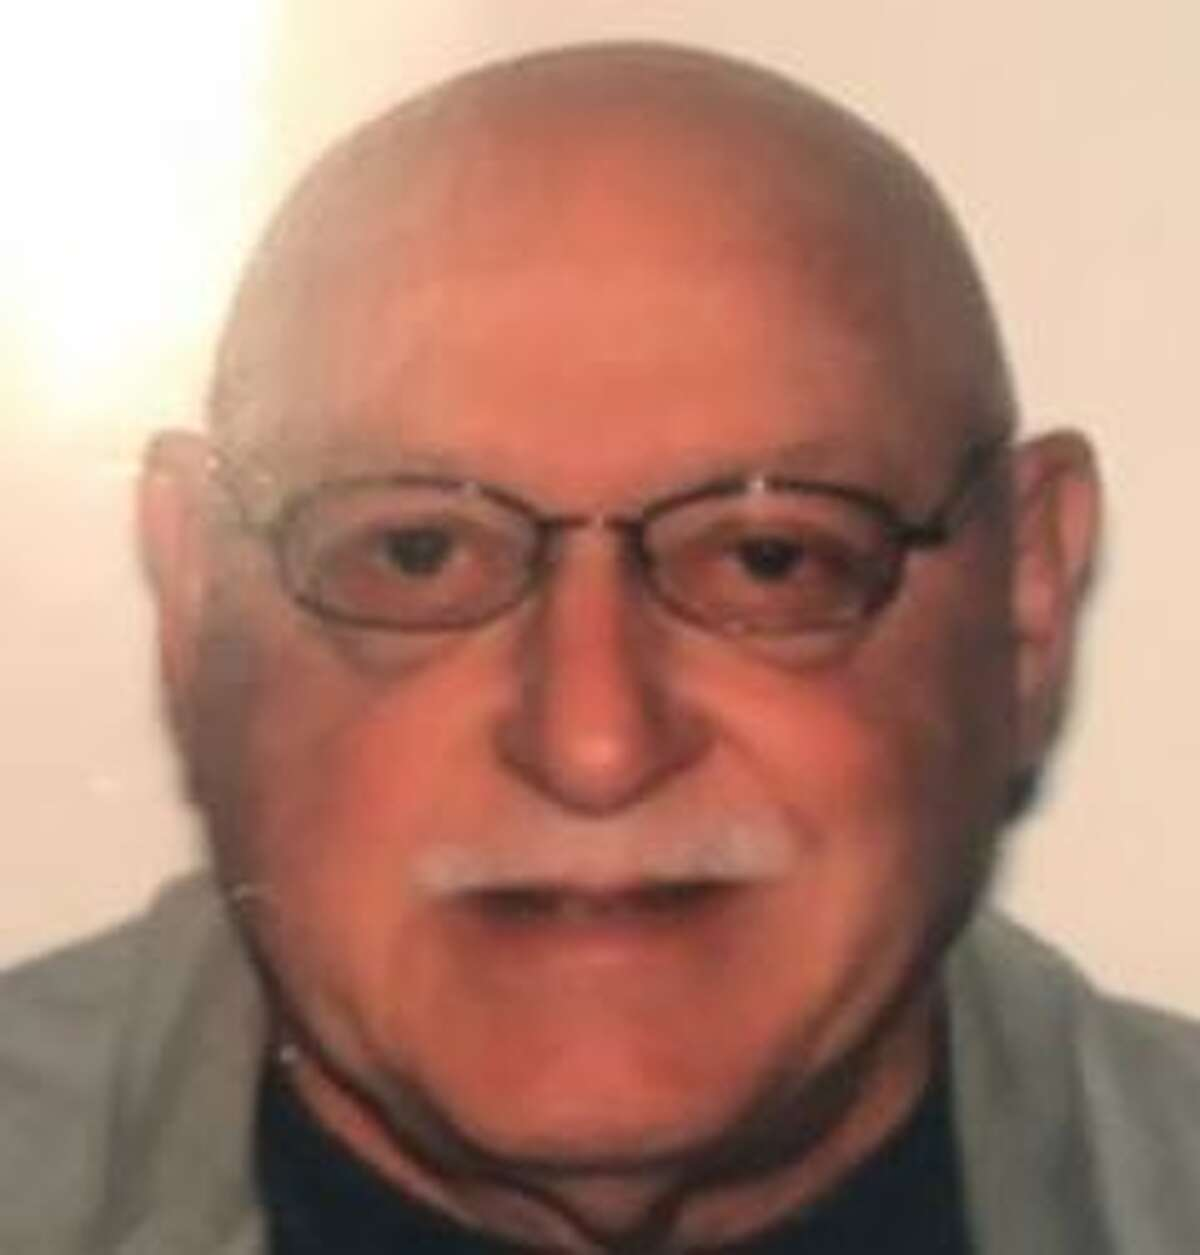 Franklin J. Herman, 71, was last seen at 9 a.m. Thursday in Jerusalem, Yates County, but information gathered by investigators indicates he was on Delaware Avenue in Cohoes at 9:40 a.m. Friday. Call 911 with information.